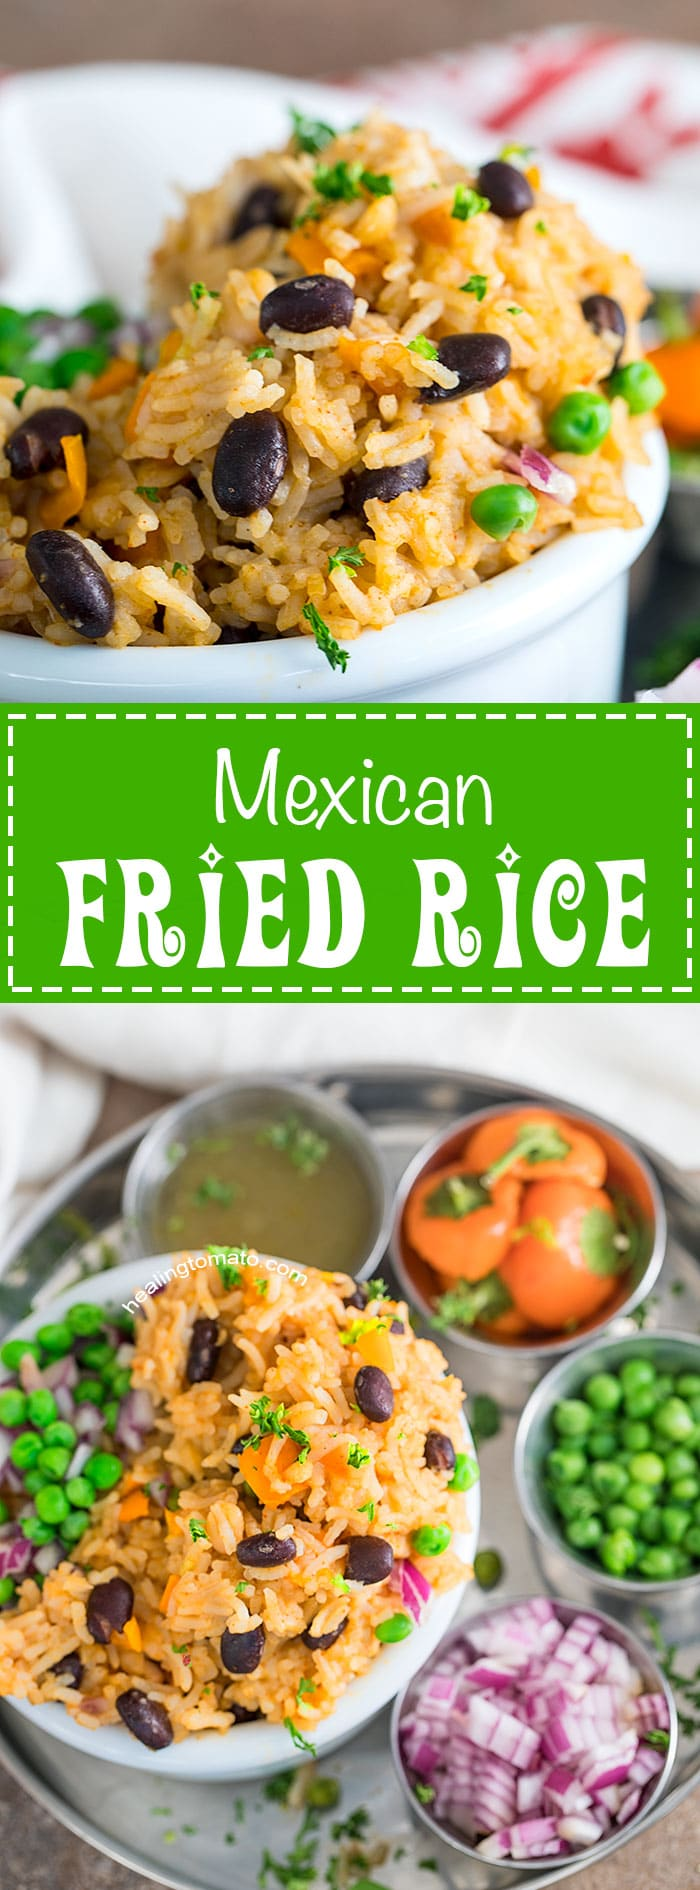 This quick and easy vegan Mexican fried rice is so delicious and filling. Its my take on the traditional Mexican rice that you get in restaurants. I used peas instead of corn because I love how delicious it tastes with rice. Eat it for lunch, side dish and part of a meal prep recipe. #vegan #mexican #rice #cincodemayo #vegetarian #comfortfood #healthy #dinner #familymeals